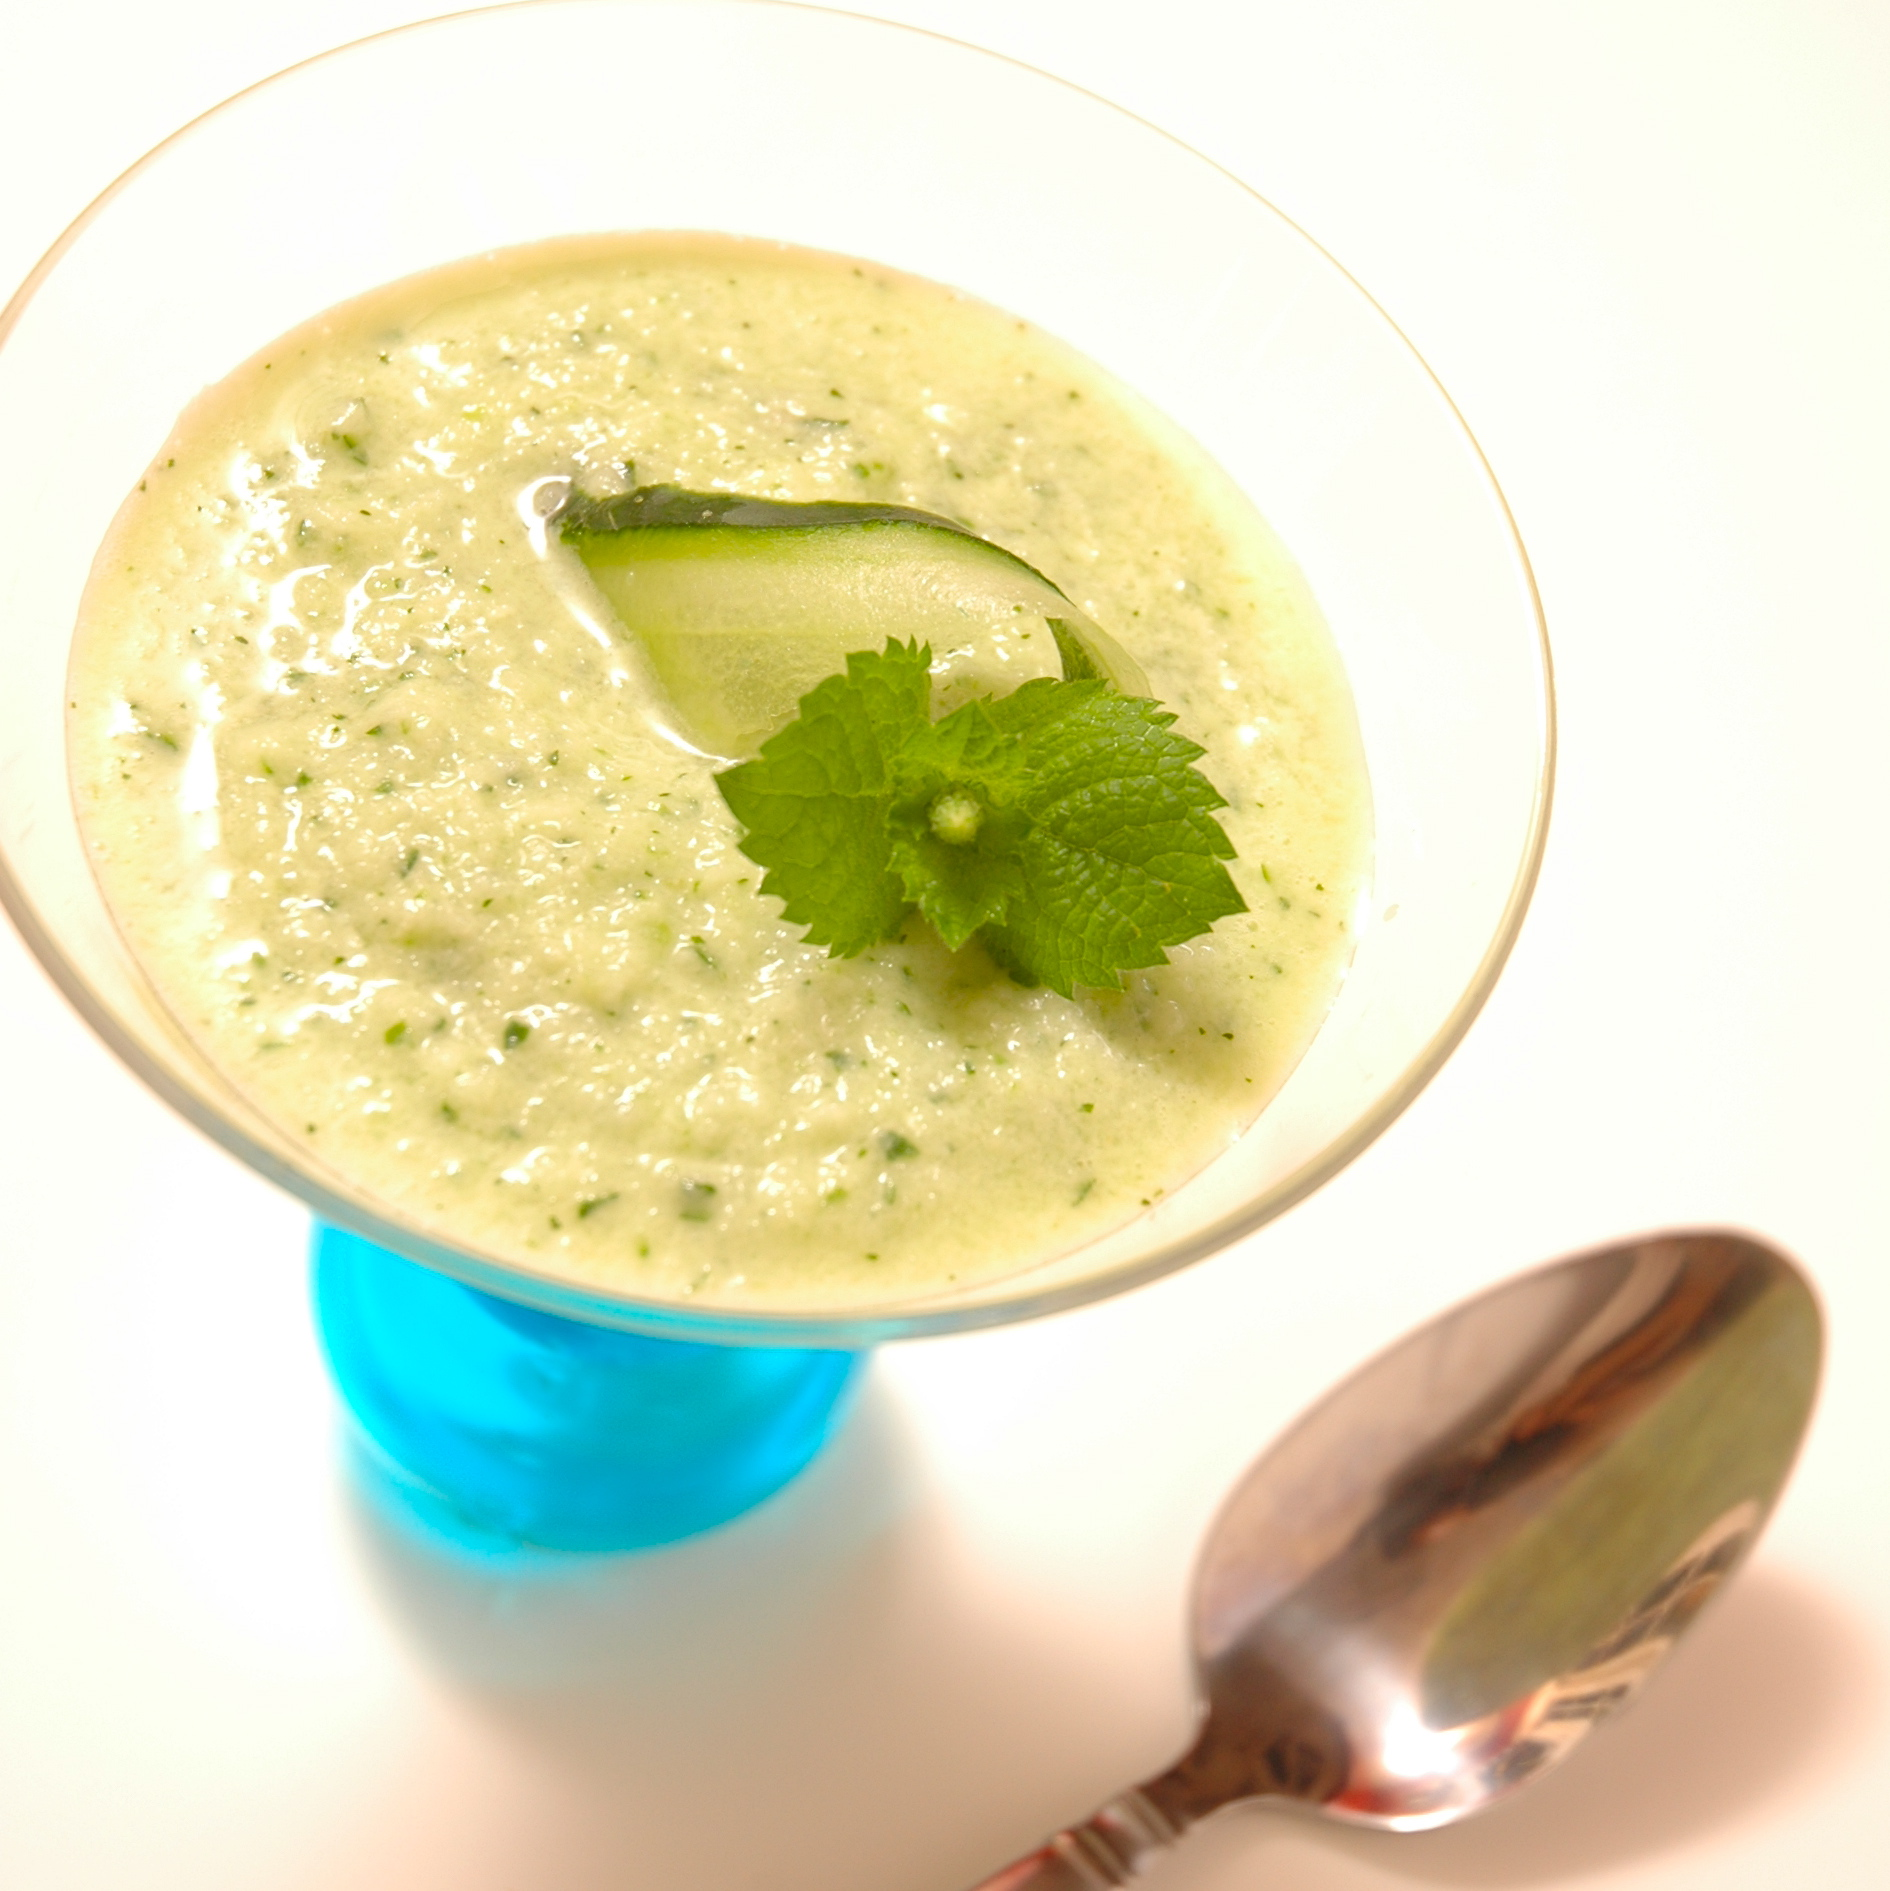 flatbread cucumber soup cucumber soup recipe cool cucumber soup ...